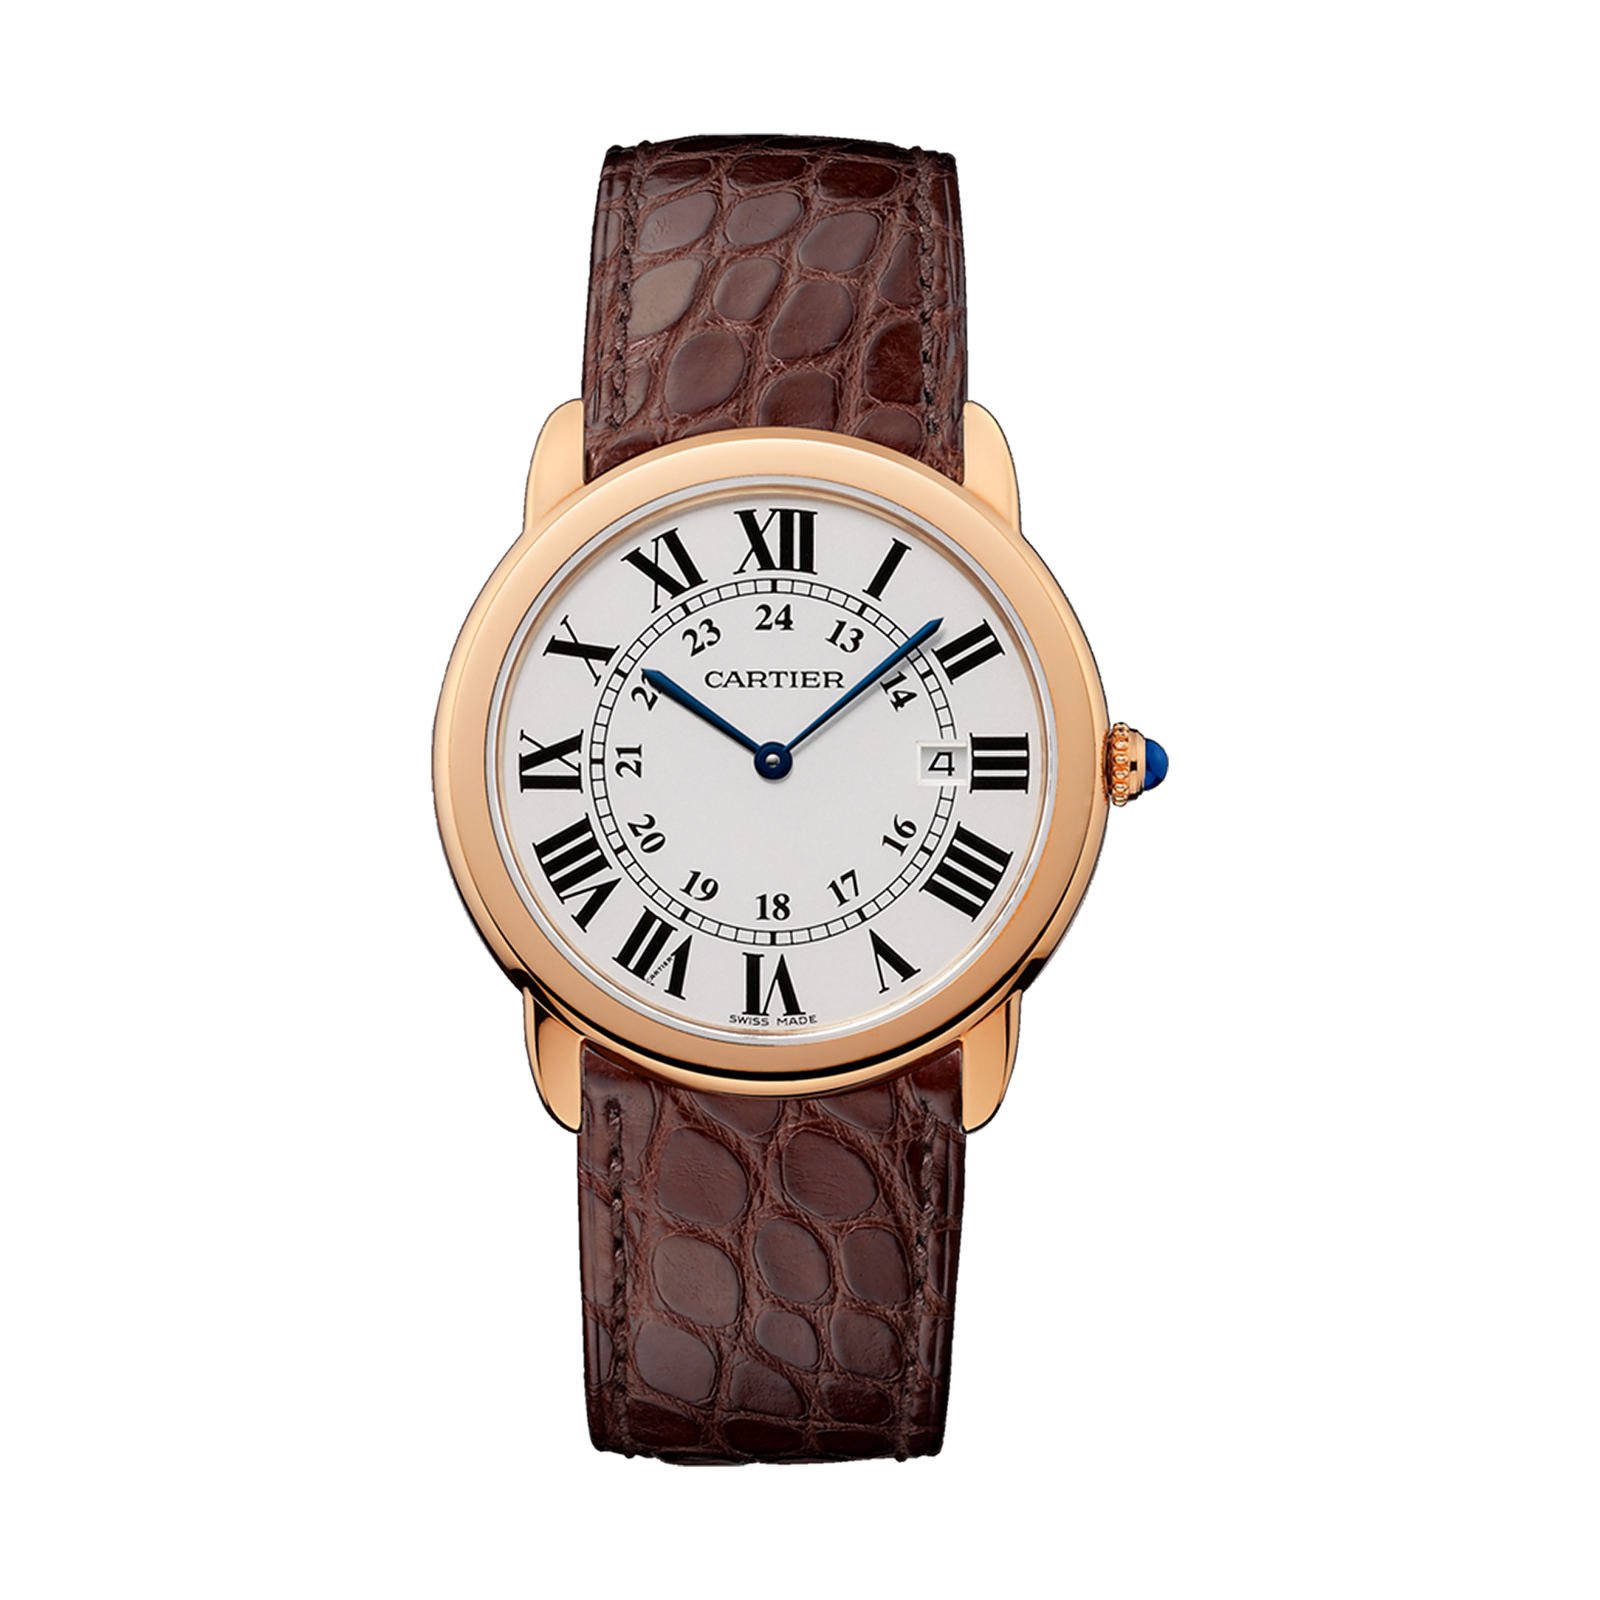 Ronde Solo de Cartier watch, 36 mm, 18K rose gold, steel, leather